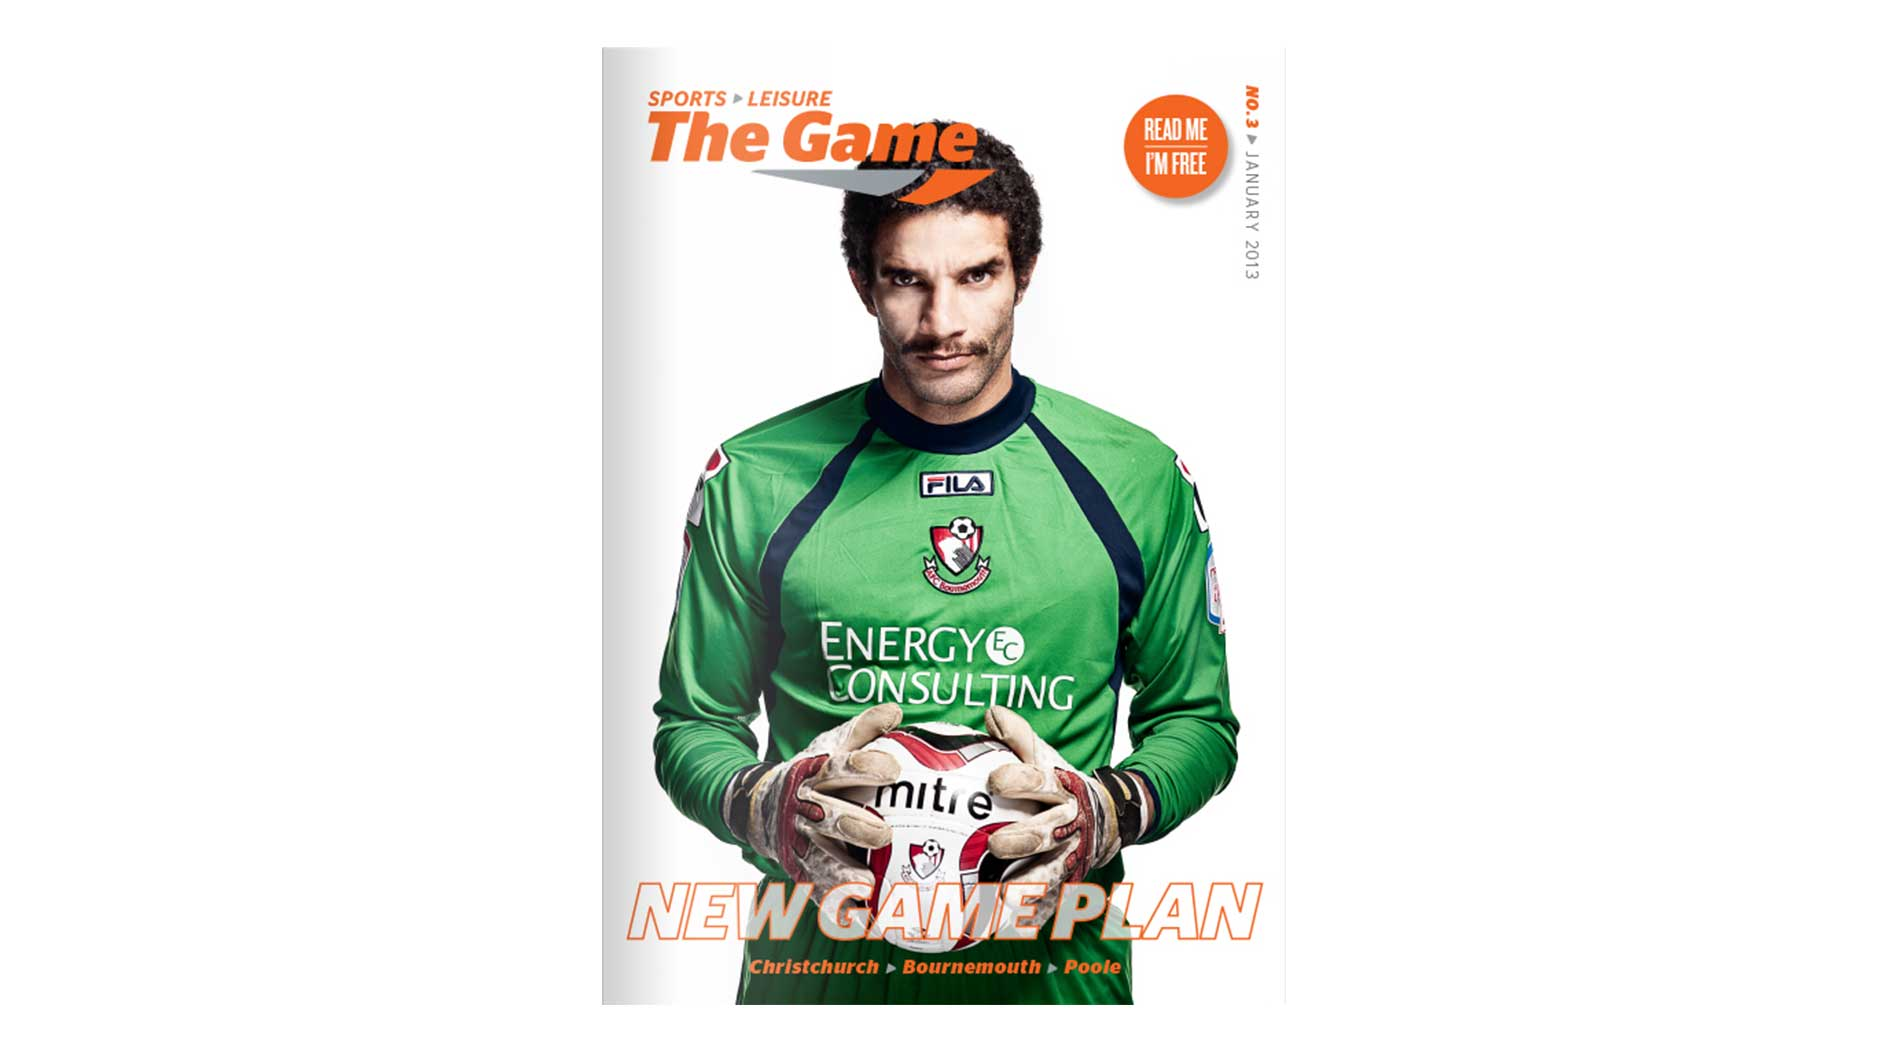 Game Magazine January 2013 front cover